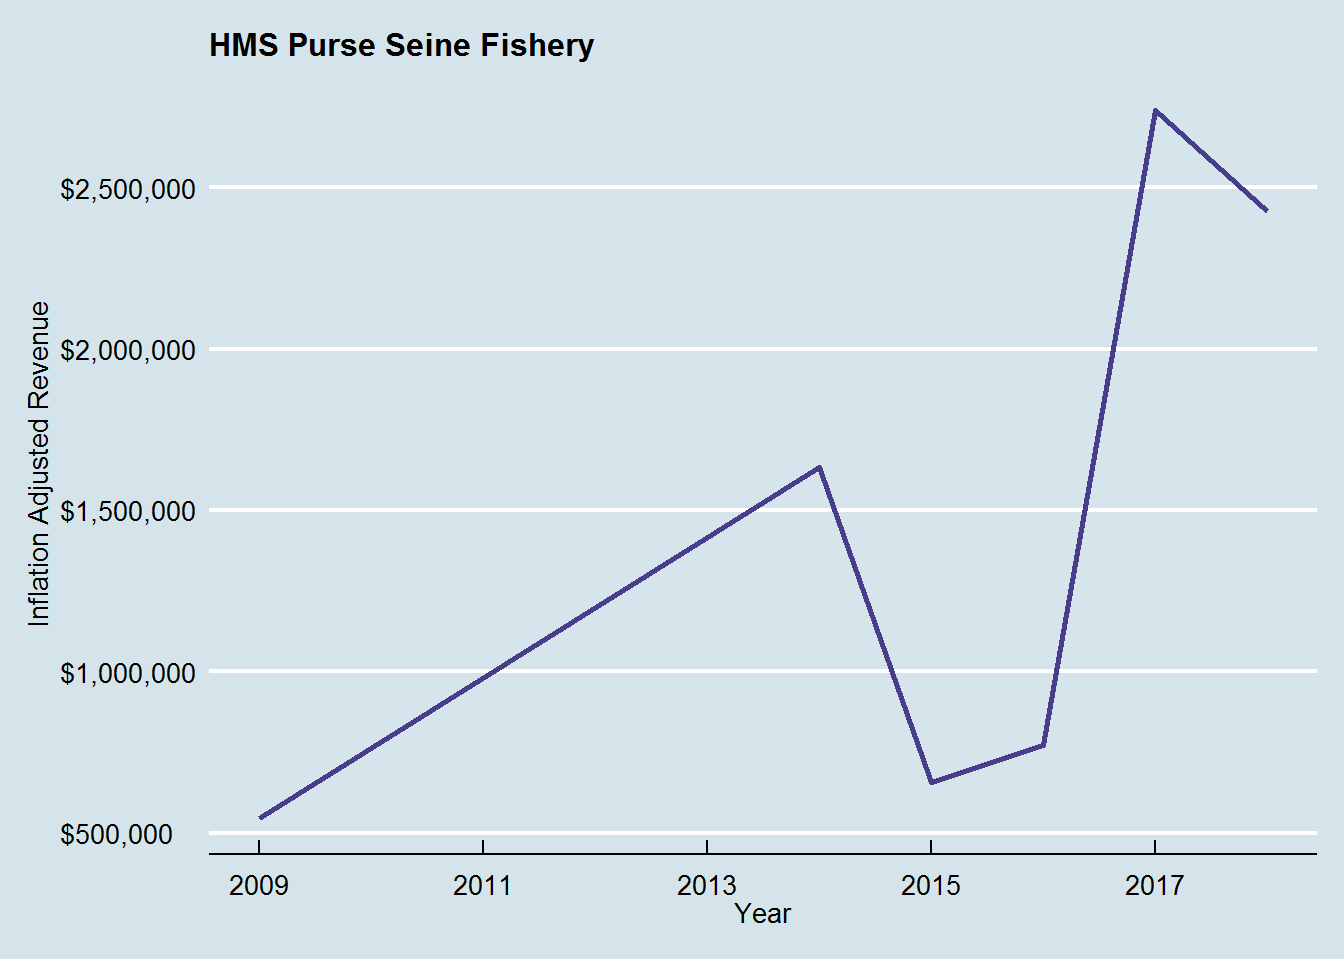 Inflation-adjusted revenue for the HMS purse seine fishery for albacore, last 10 years.